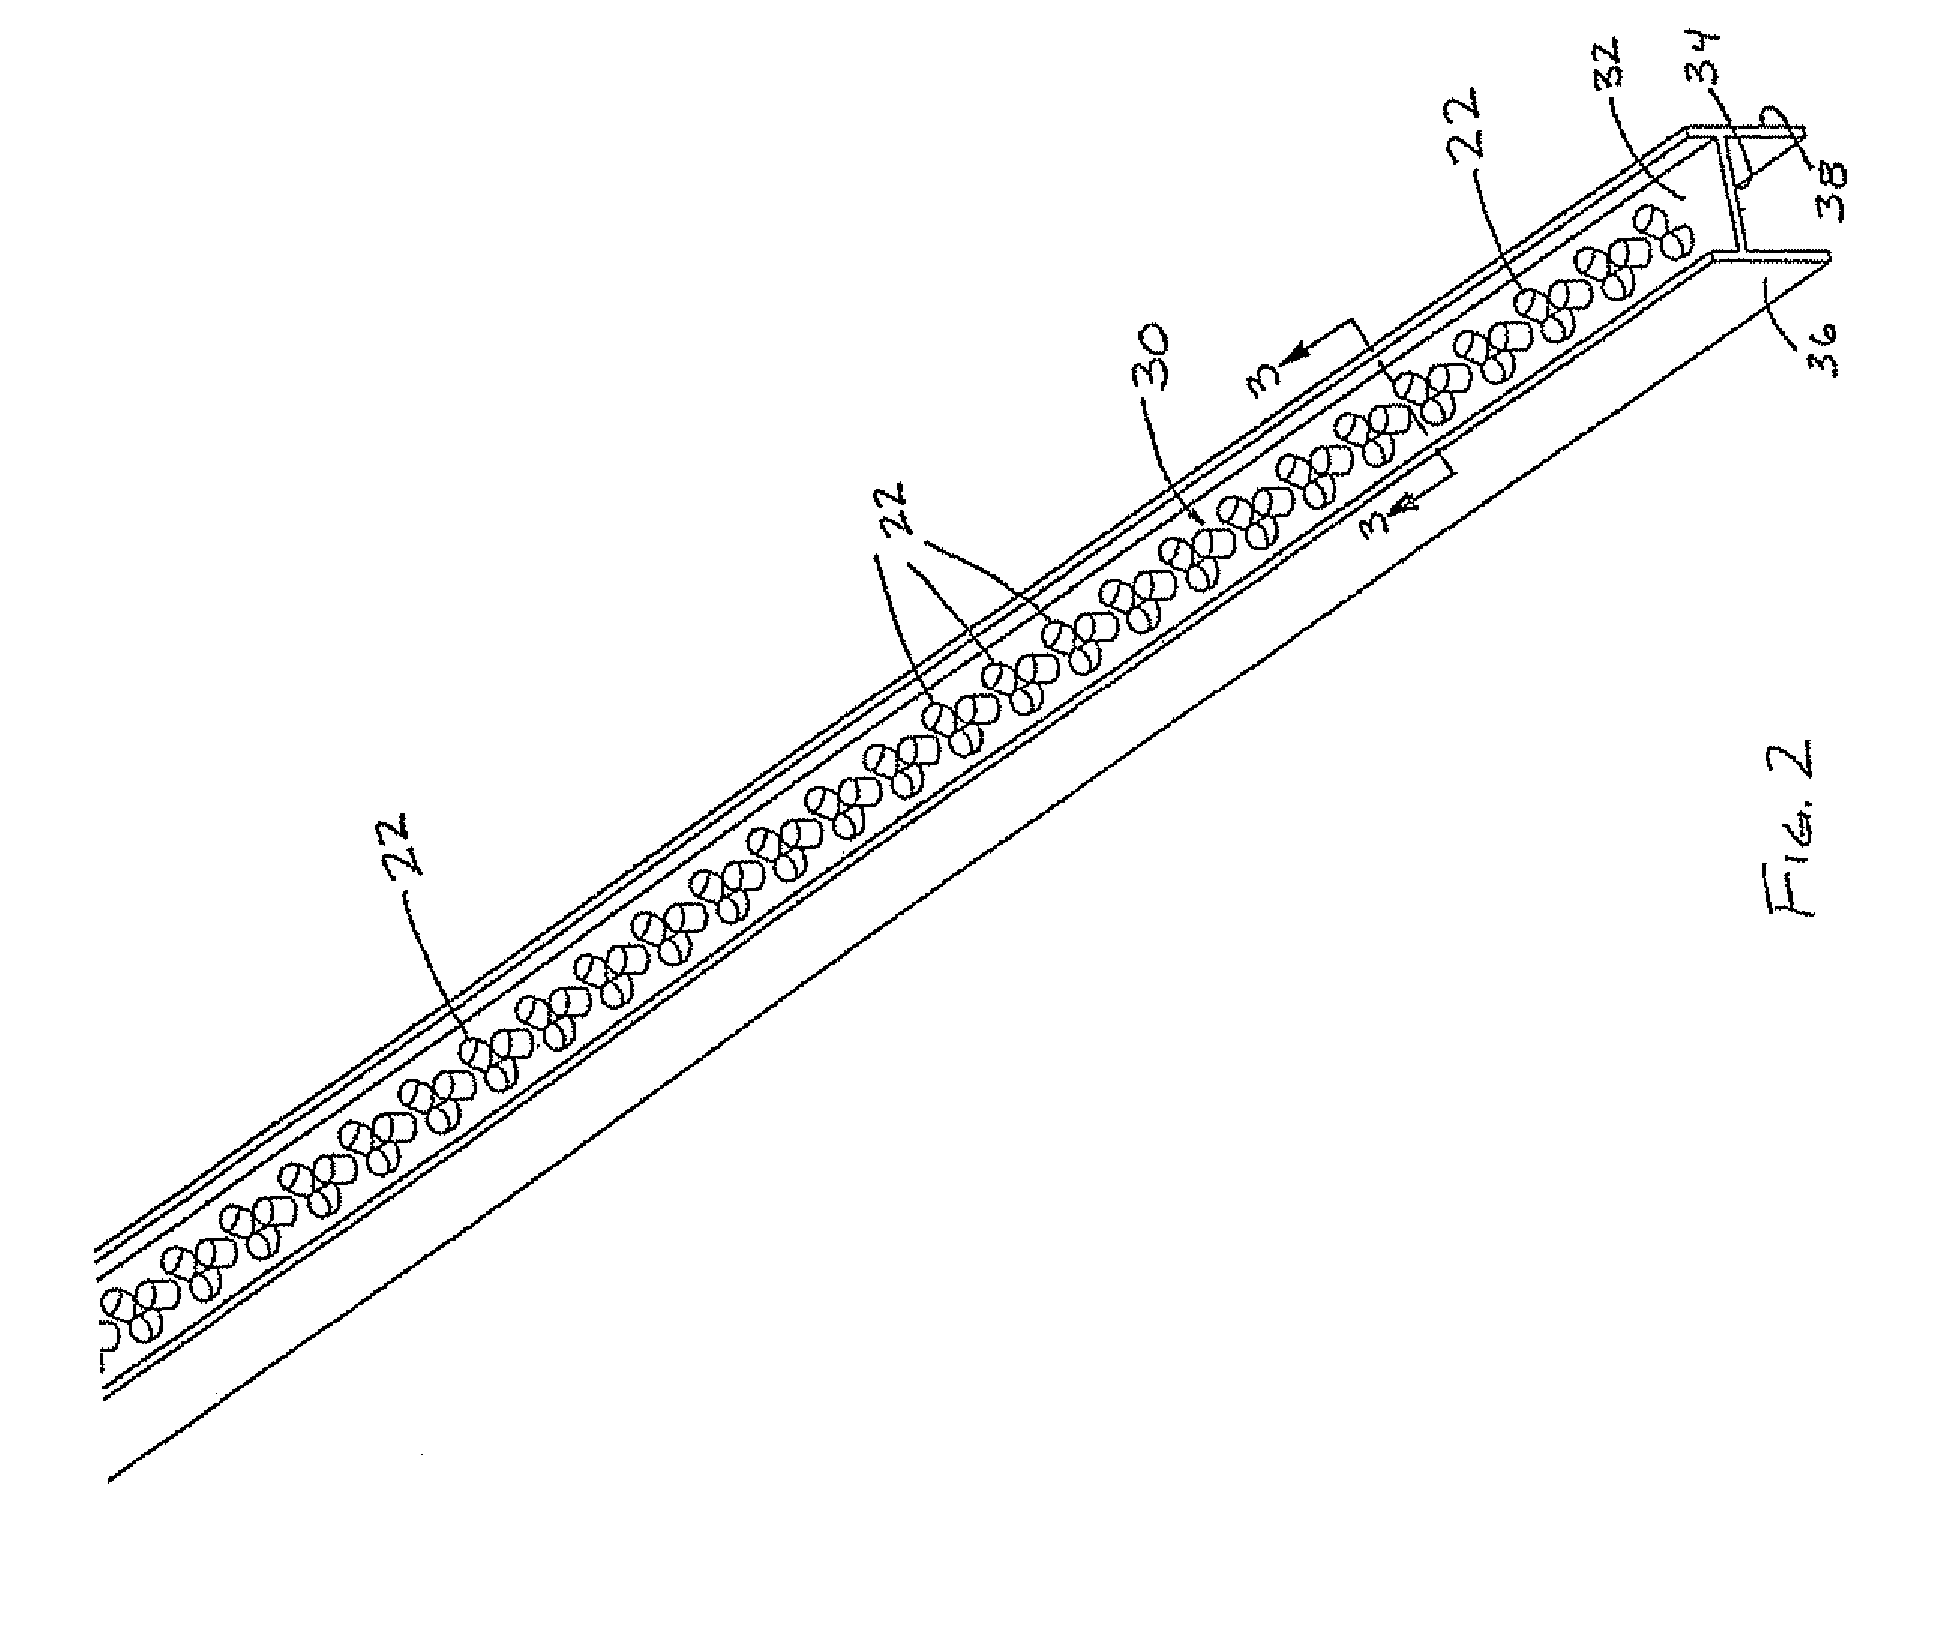 Fluorescent Tube Drawing Patent Us7510299 Led Lighting Device For Replacing